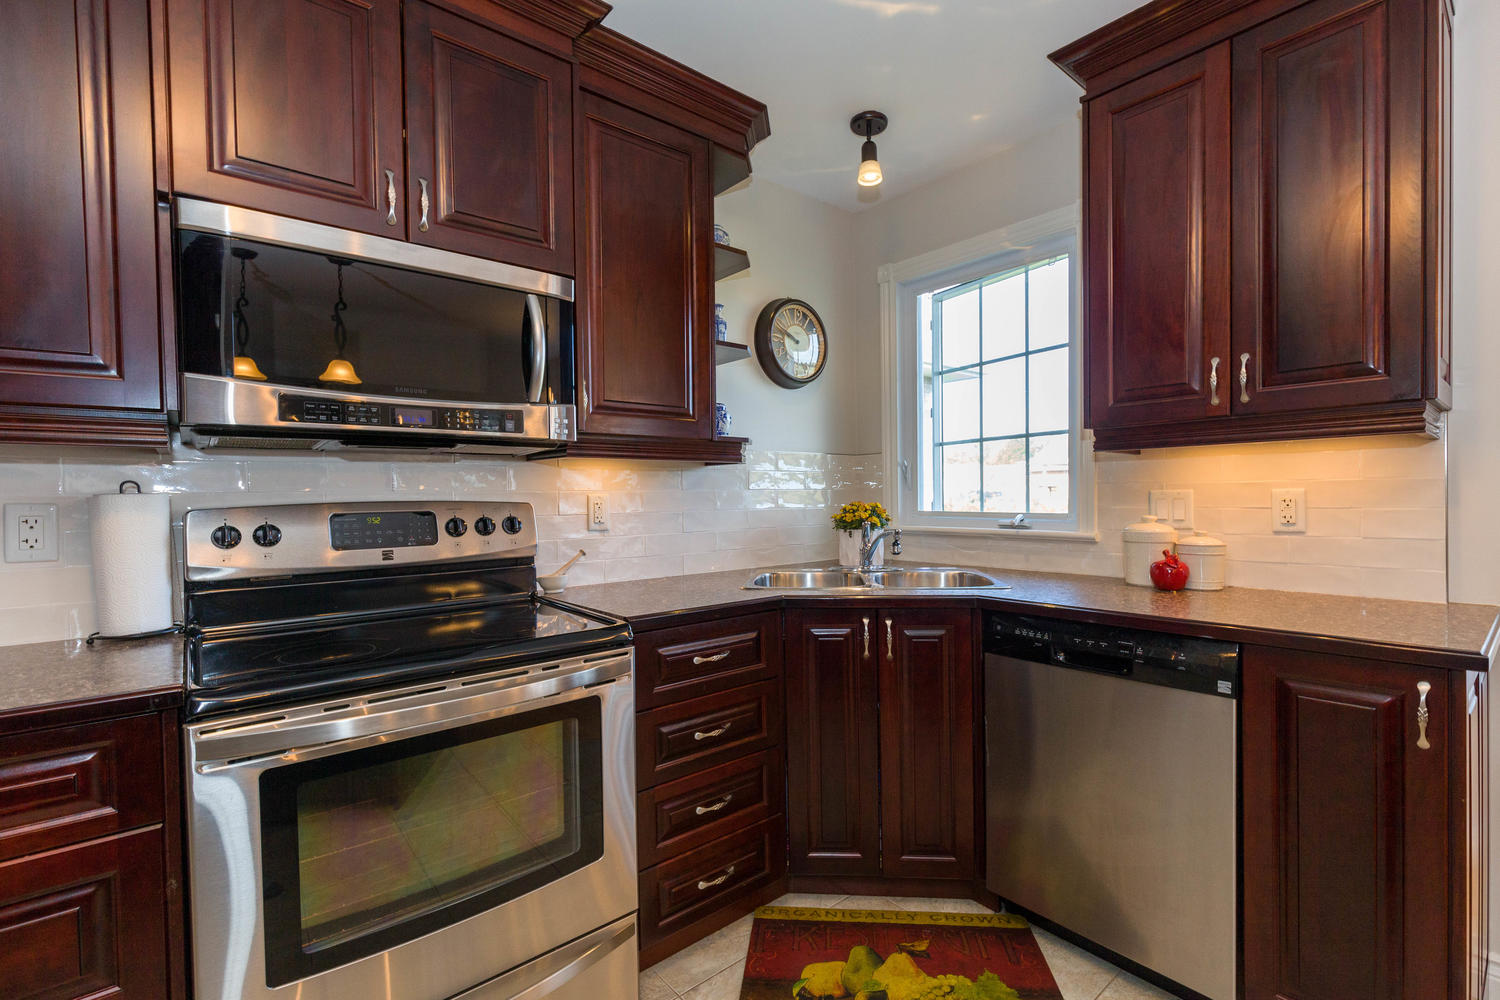 Large open and spacious.  Lots of cabinet and counter space, stainless steel appliances, great view out back from the kitchen sink.  Gorgeous breakfast bar.  Sure to impress.